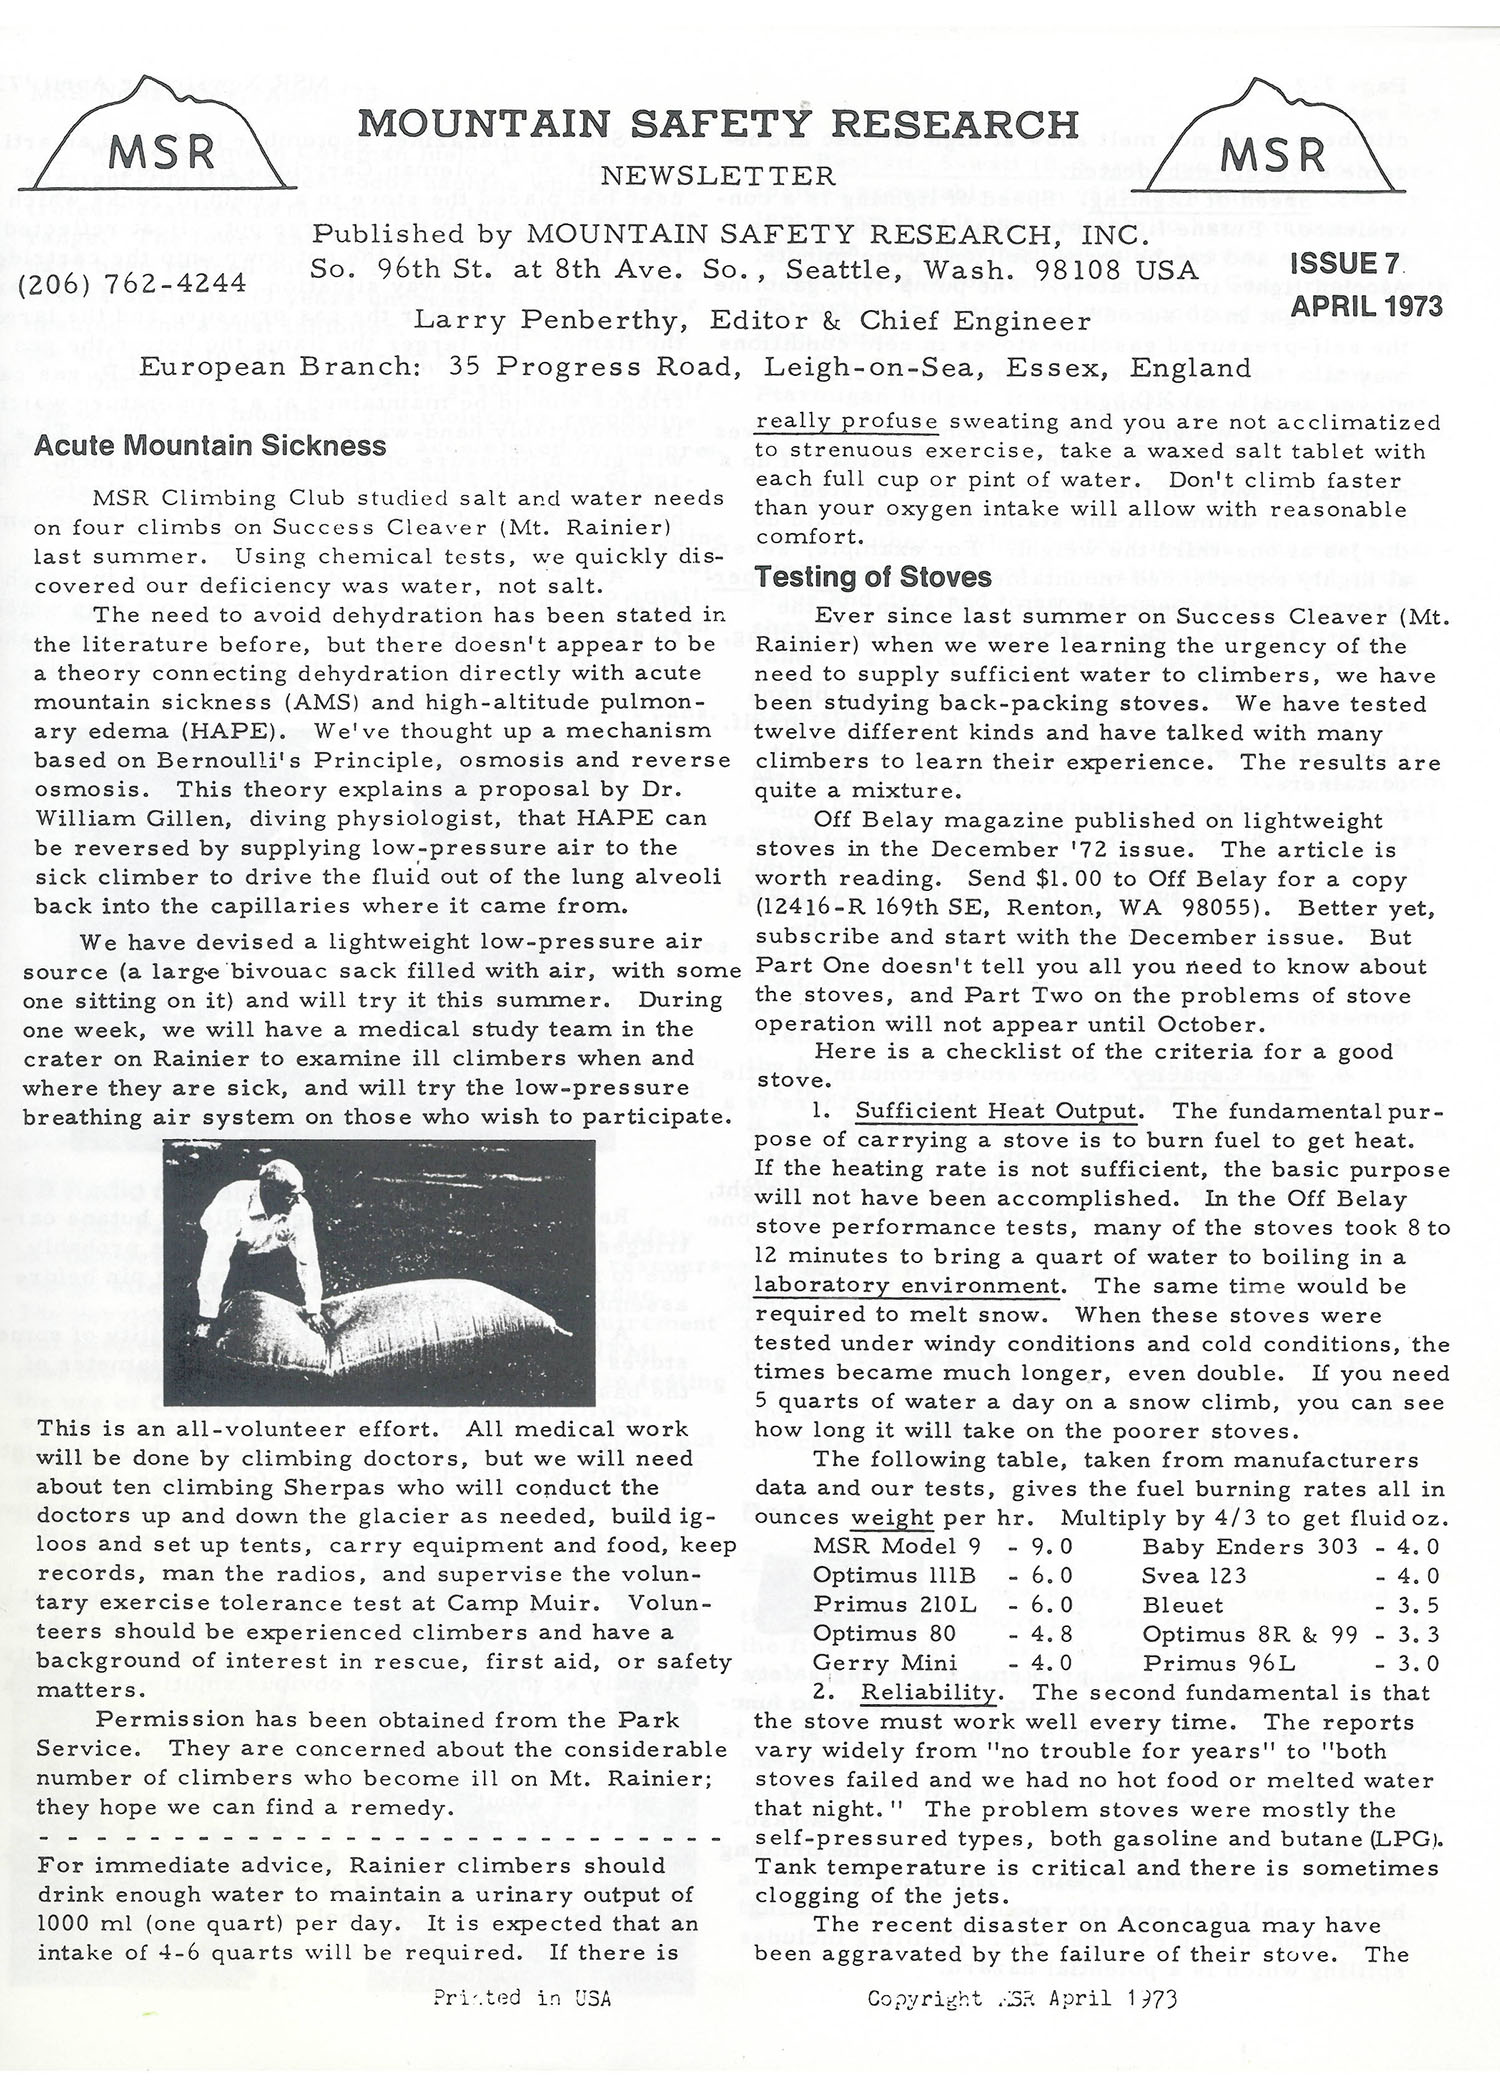 Mountain Safety Research Newsletter 1970s